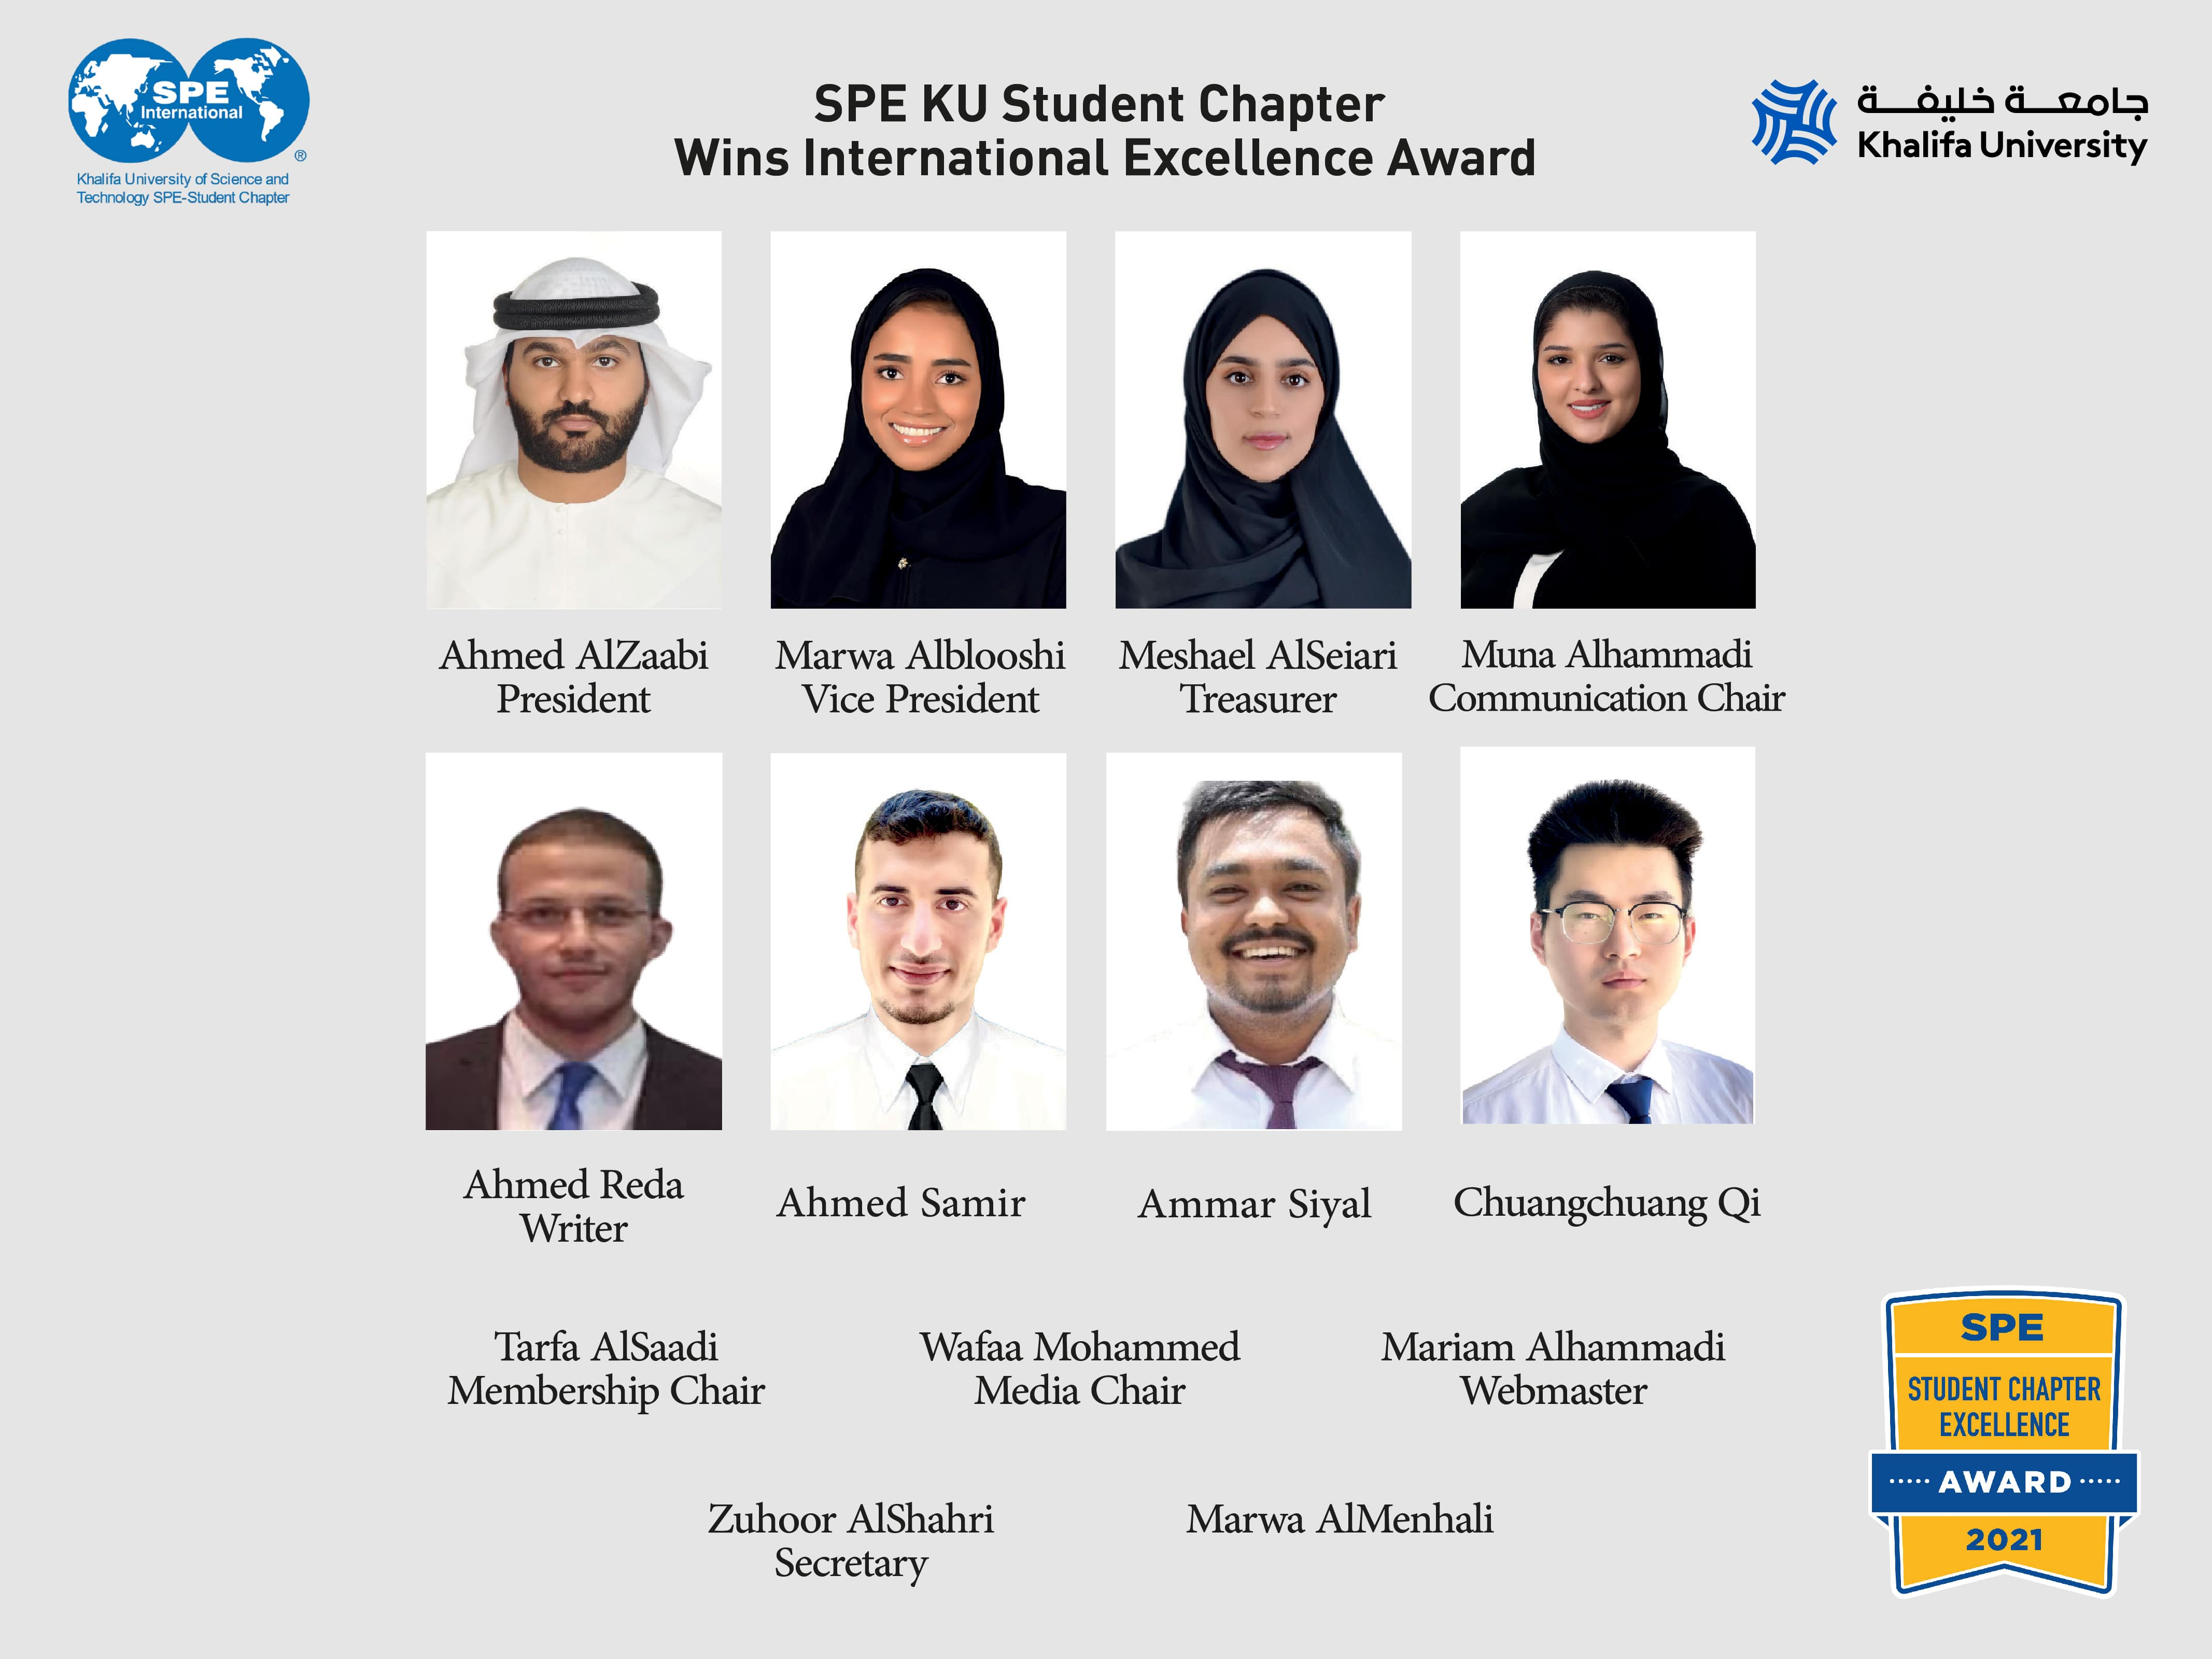 Khalifa University's Society of Petroleum Engineers Student Chapter Receives Excellence Award